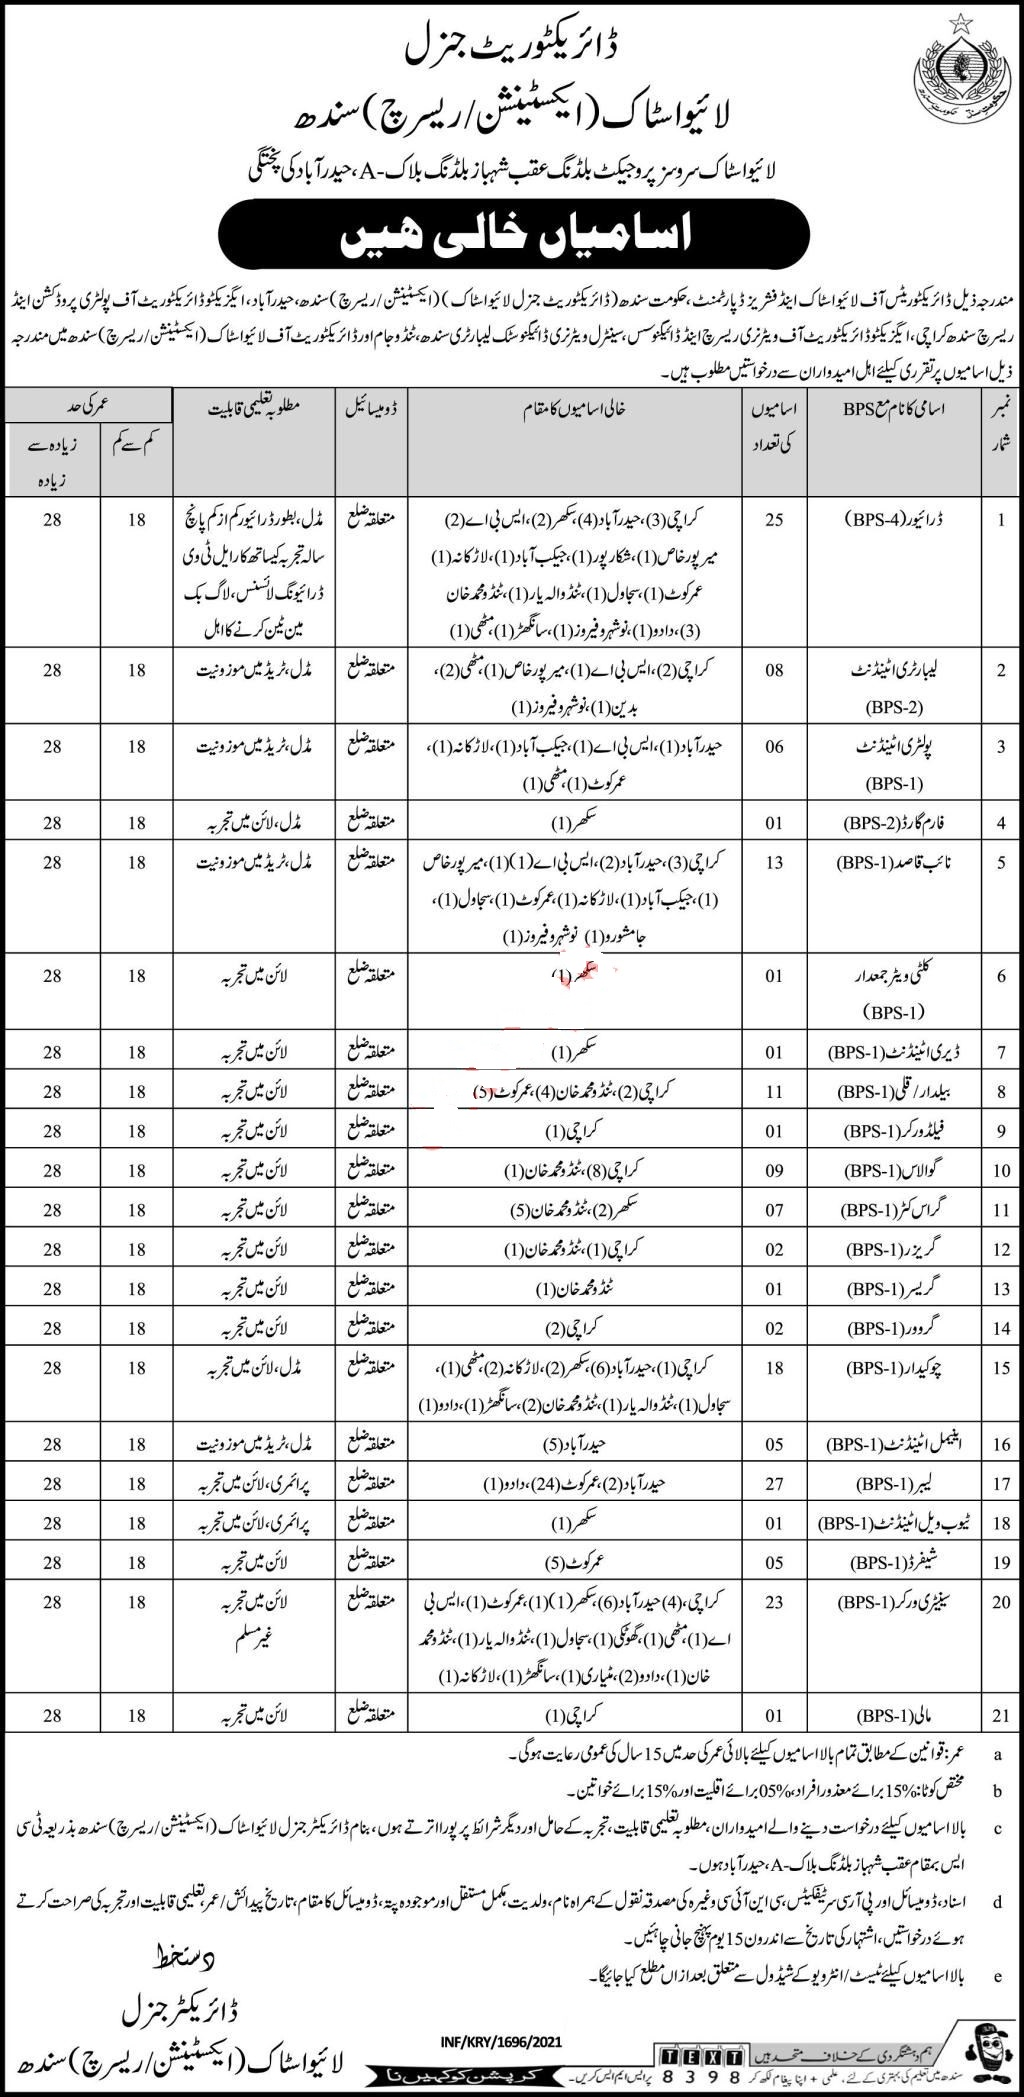 Livestock Extension Research Karachi Jobs 2021 for Driver, LTV Driver, HTV Driver, Laboratory Attendant, Poultry Attendant, Farm Guard, Naib Qasid, Waiter, Sweeper, Dairy Attendant, Baildar, Coolie, Field Worker, Grass Cutter, Greaser, Gracer, Chowkidar, Animal Attendant, Labour, Tube Well Attendant, Sanitary Worker, Mali.